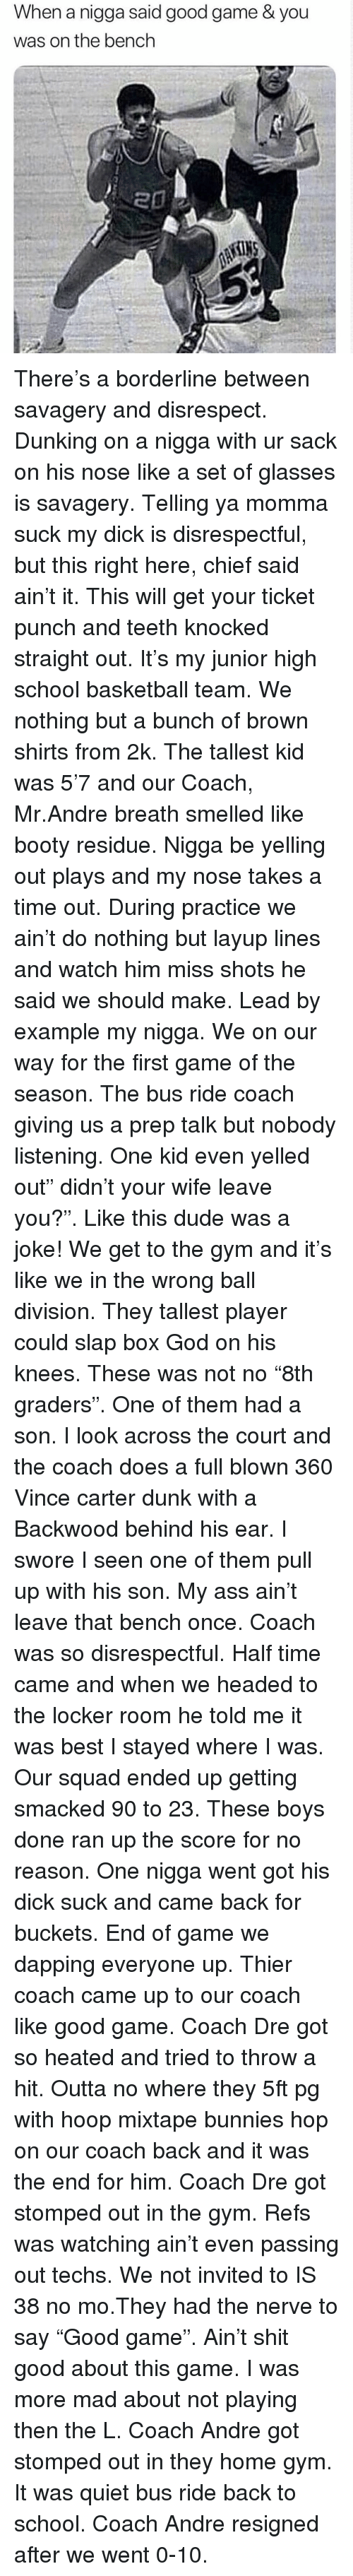 "Ass, Basketball, and Booty: When a nigga said good game & you  was on the bench There's a borderline between savagery and disrespect. Dunking on a nigga with ur sack on his nose like a set of glasses is savagery. Telling ya momma suck my dick is disrespectful, but this right here, chief said ain't it. This will get your ticket punch and teeth knocked straight out. It's my junior high school basketball team. We nothing but a bunch of brown shirts from 2k. The tallest kid was 5'7 and our Coach, Mr.Andre breath smelled like booty residue. Nigga be yelling out plays and my nose takes a time out. During practice we ain't do nothing but layup lines and watch him miss shots he said we should make. Lead by example my nigga. We on our way for the first game of the season. The bus ride coach giving us a prep talk but nobody listening. One kid even yelled out"" didn't your wife leave you?"". Like this dude was a joke! We get to the gym and it's like we in the wrong ball division. They tallest player could slap box God on his knees. These was not no ""8th graders"". One of them had a son. I look across the court and the coach does a full blown 360 Vince carter dunk with a Backwood behind his ear. I swore I seen one of them pull up with his son. My ass ain't leave that bench once. Coach was so disrespectful. Half time came and when we headed to the locker room he told me it was best I stayed where I was. Our squad ended up getting smacked 90 to 23. These boys done ran up the score for no reason. One nigga went got his dick suck and came back for buckets. End of game we dapping everyone up. Thier coach came up to our coach like good game. Coach Dre got so heated and tried to throw a hit. Outta no where they 5ft pg with hoop mixtape bunnies hop on our coach back and it was the end for him. Coach Dre got stomped out in the gym. Refs was watching ain't even passing out techs. We not invited to IS 38 no mo.They had the nerve to say ""Good game"". Ain't shit good about this game. I was more mad about not playing then the L. Coach Andre got stomped out in they home gym. It was quiet bus ride back to school. Coach Andre resigned after we went 0-10."